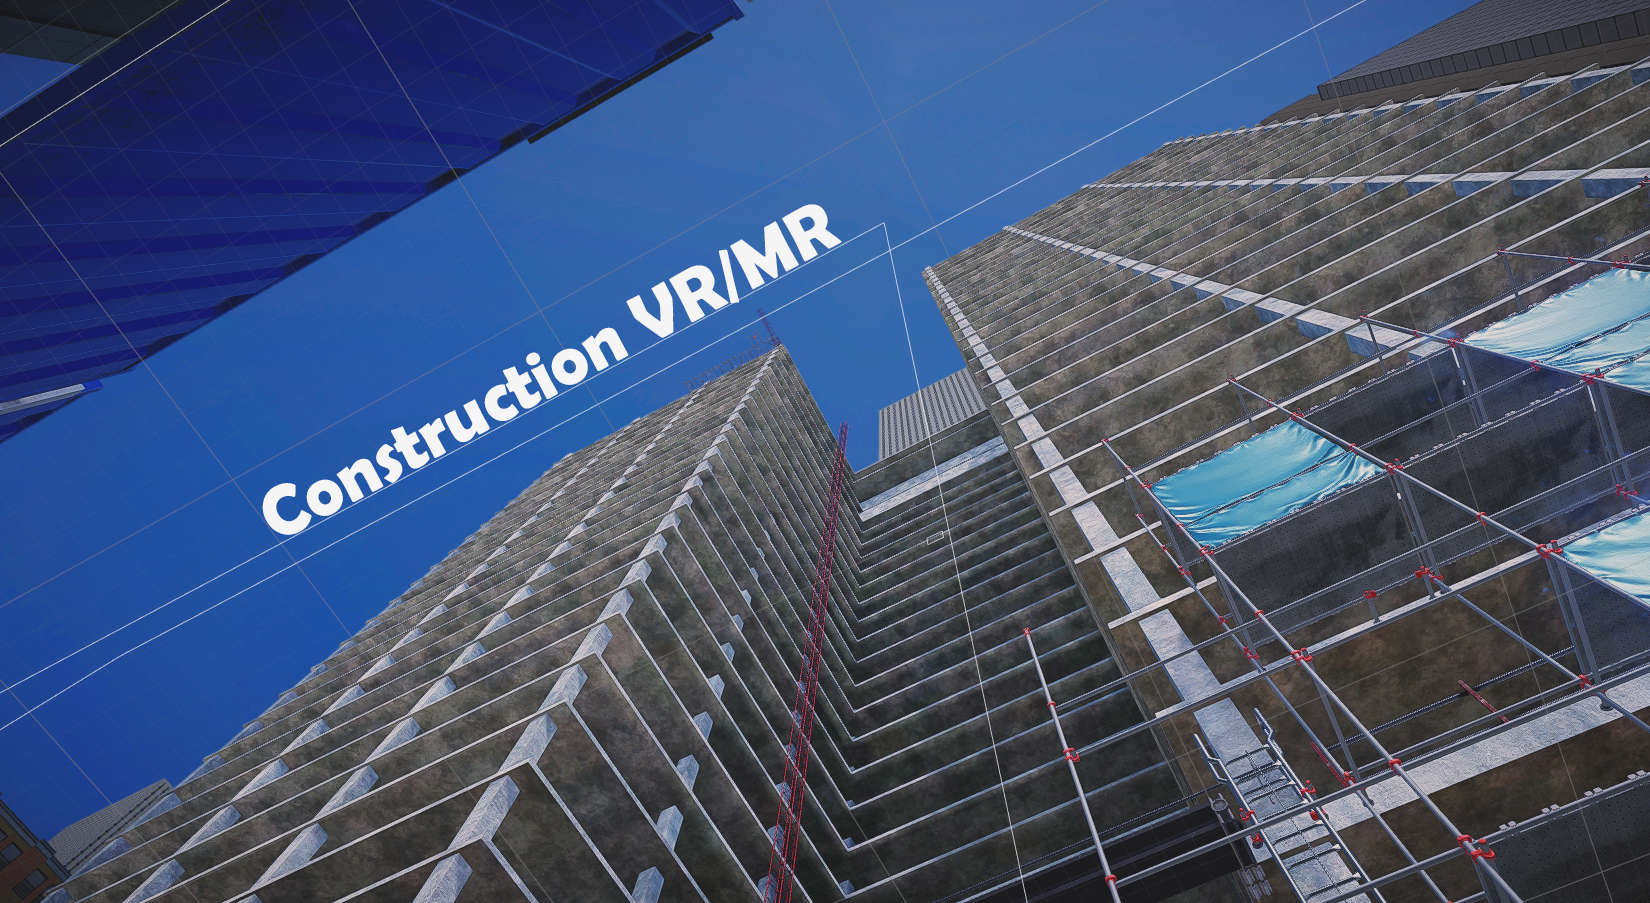 Construction VR/MR